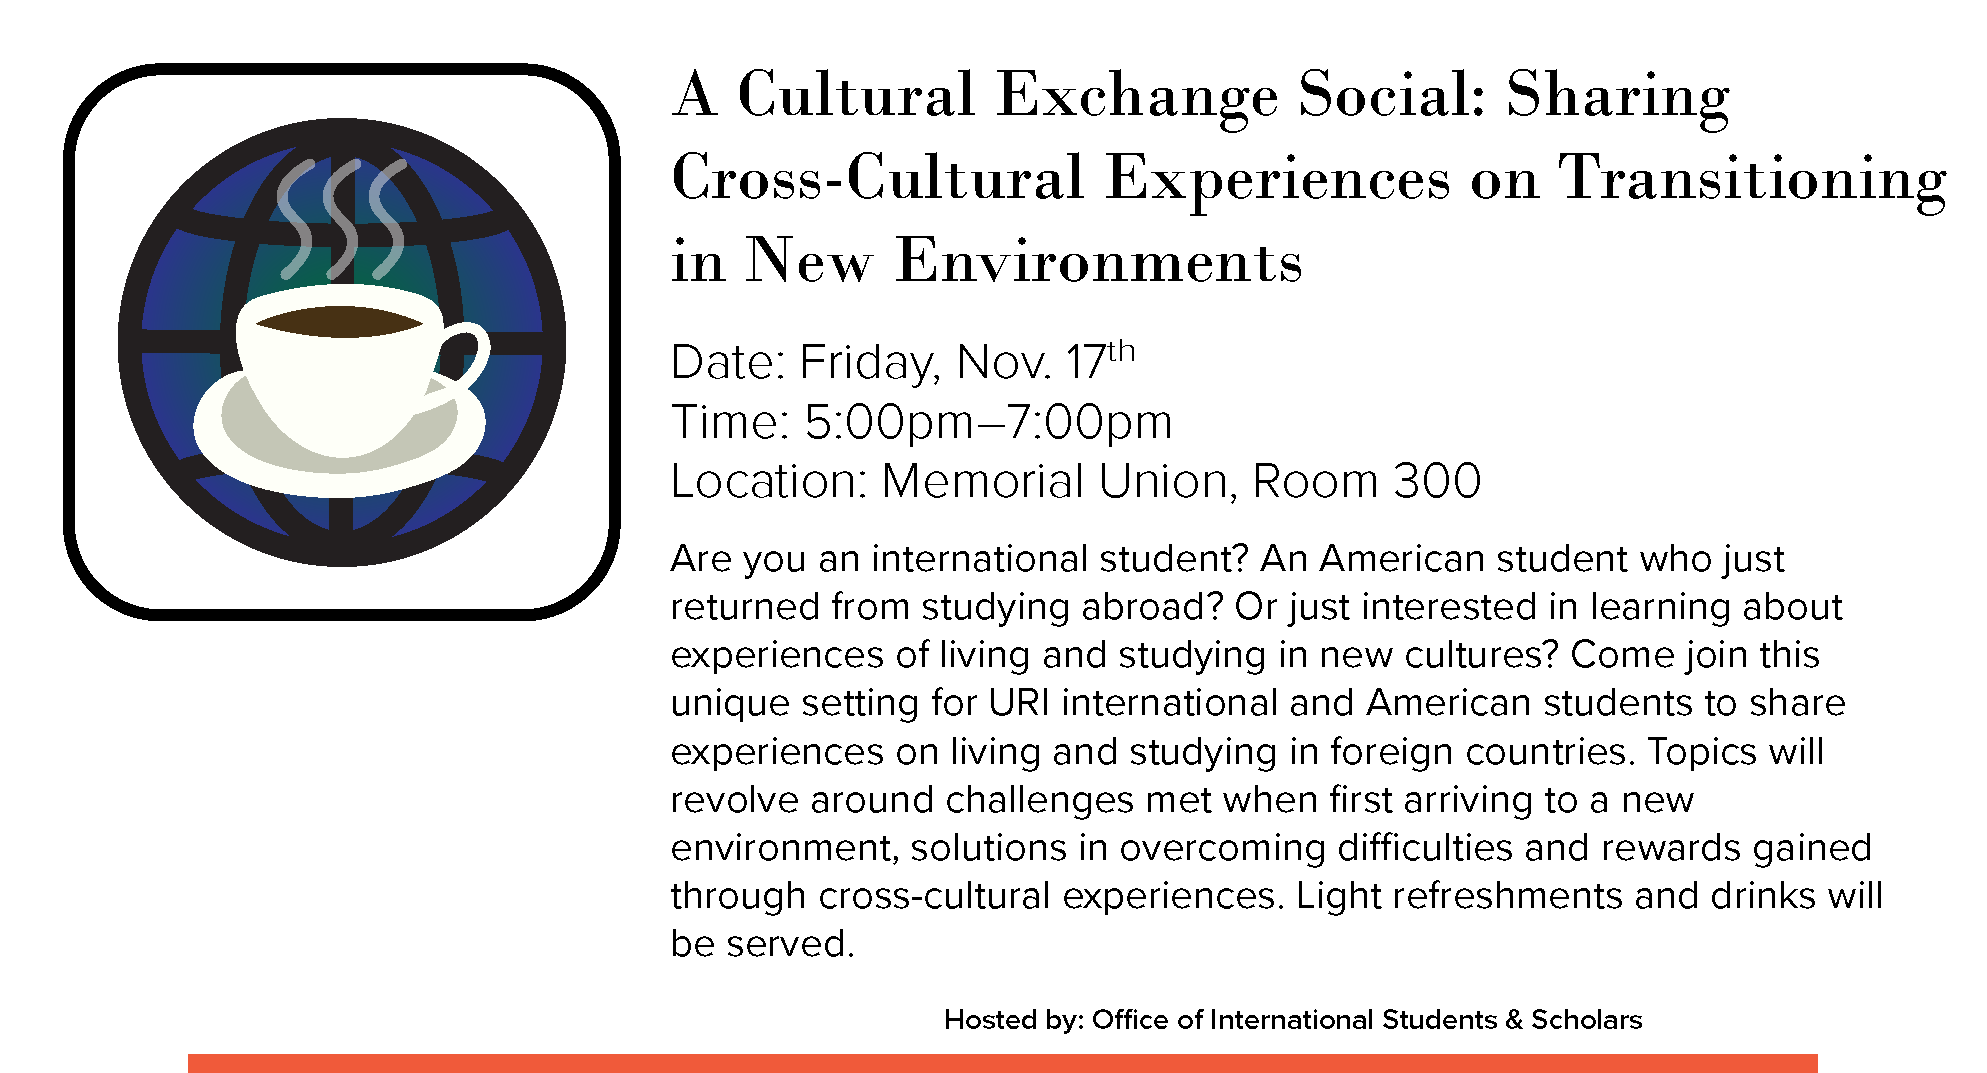 A Cultural Exchange Social: Sharing Cross-Cultural Experiences on Transitioning in New Environments Event